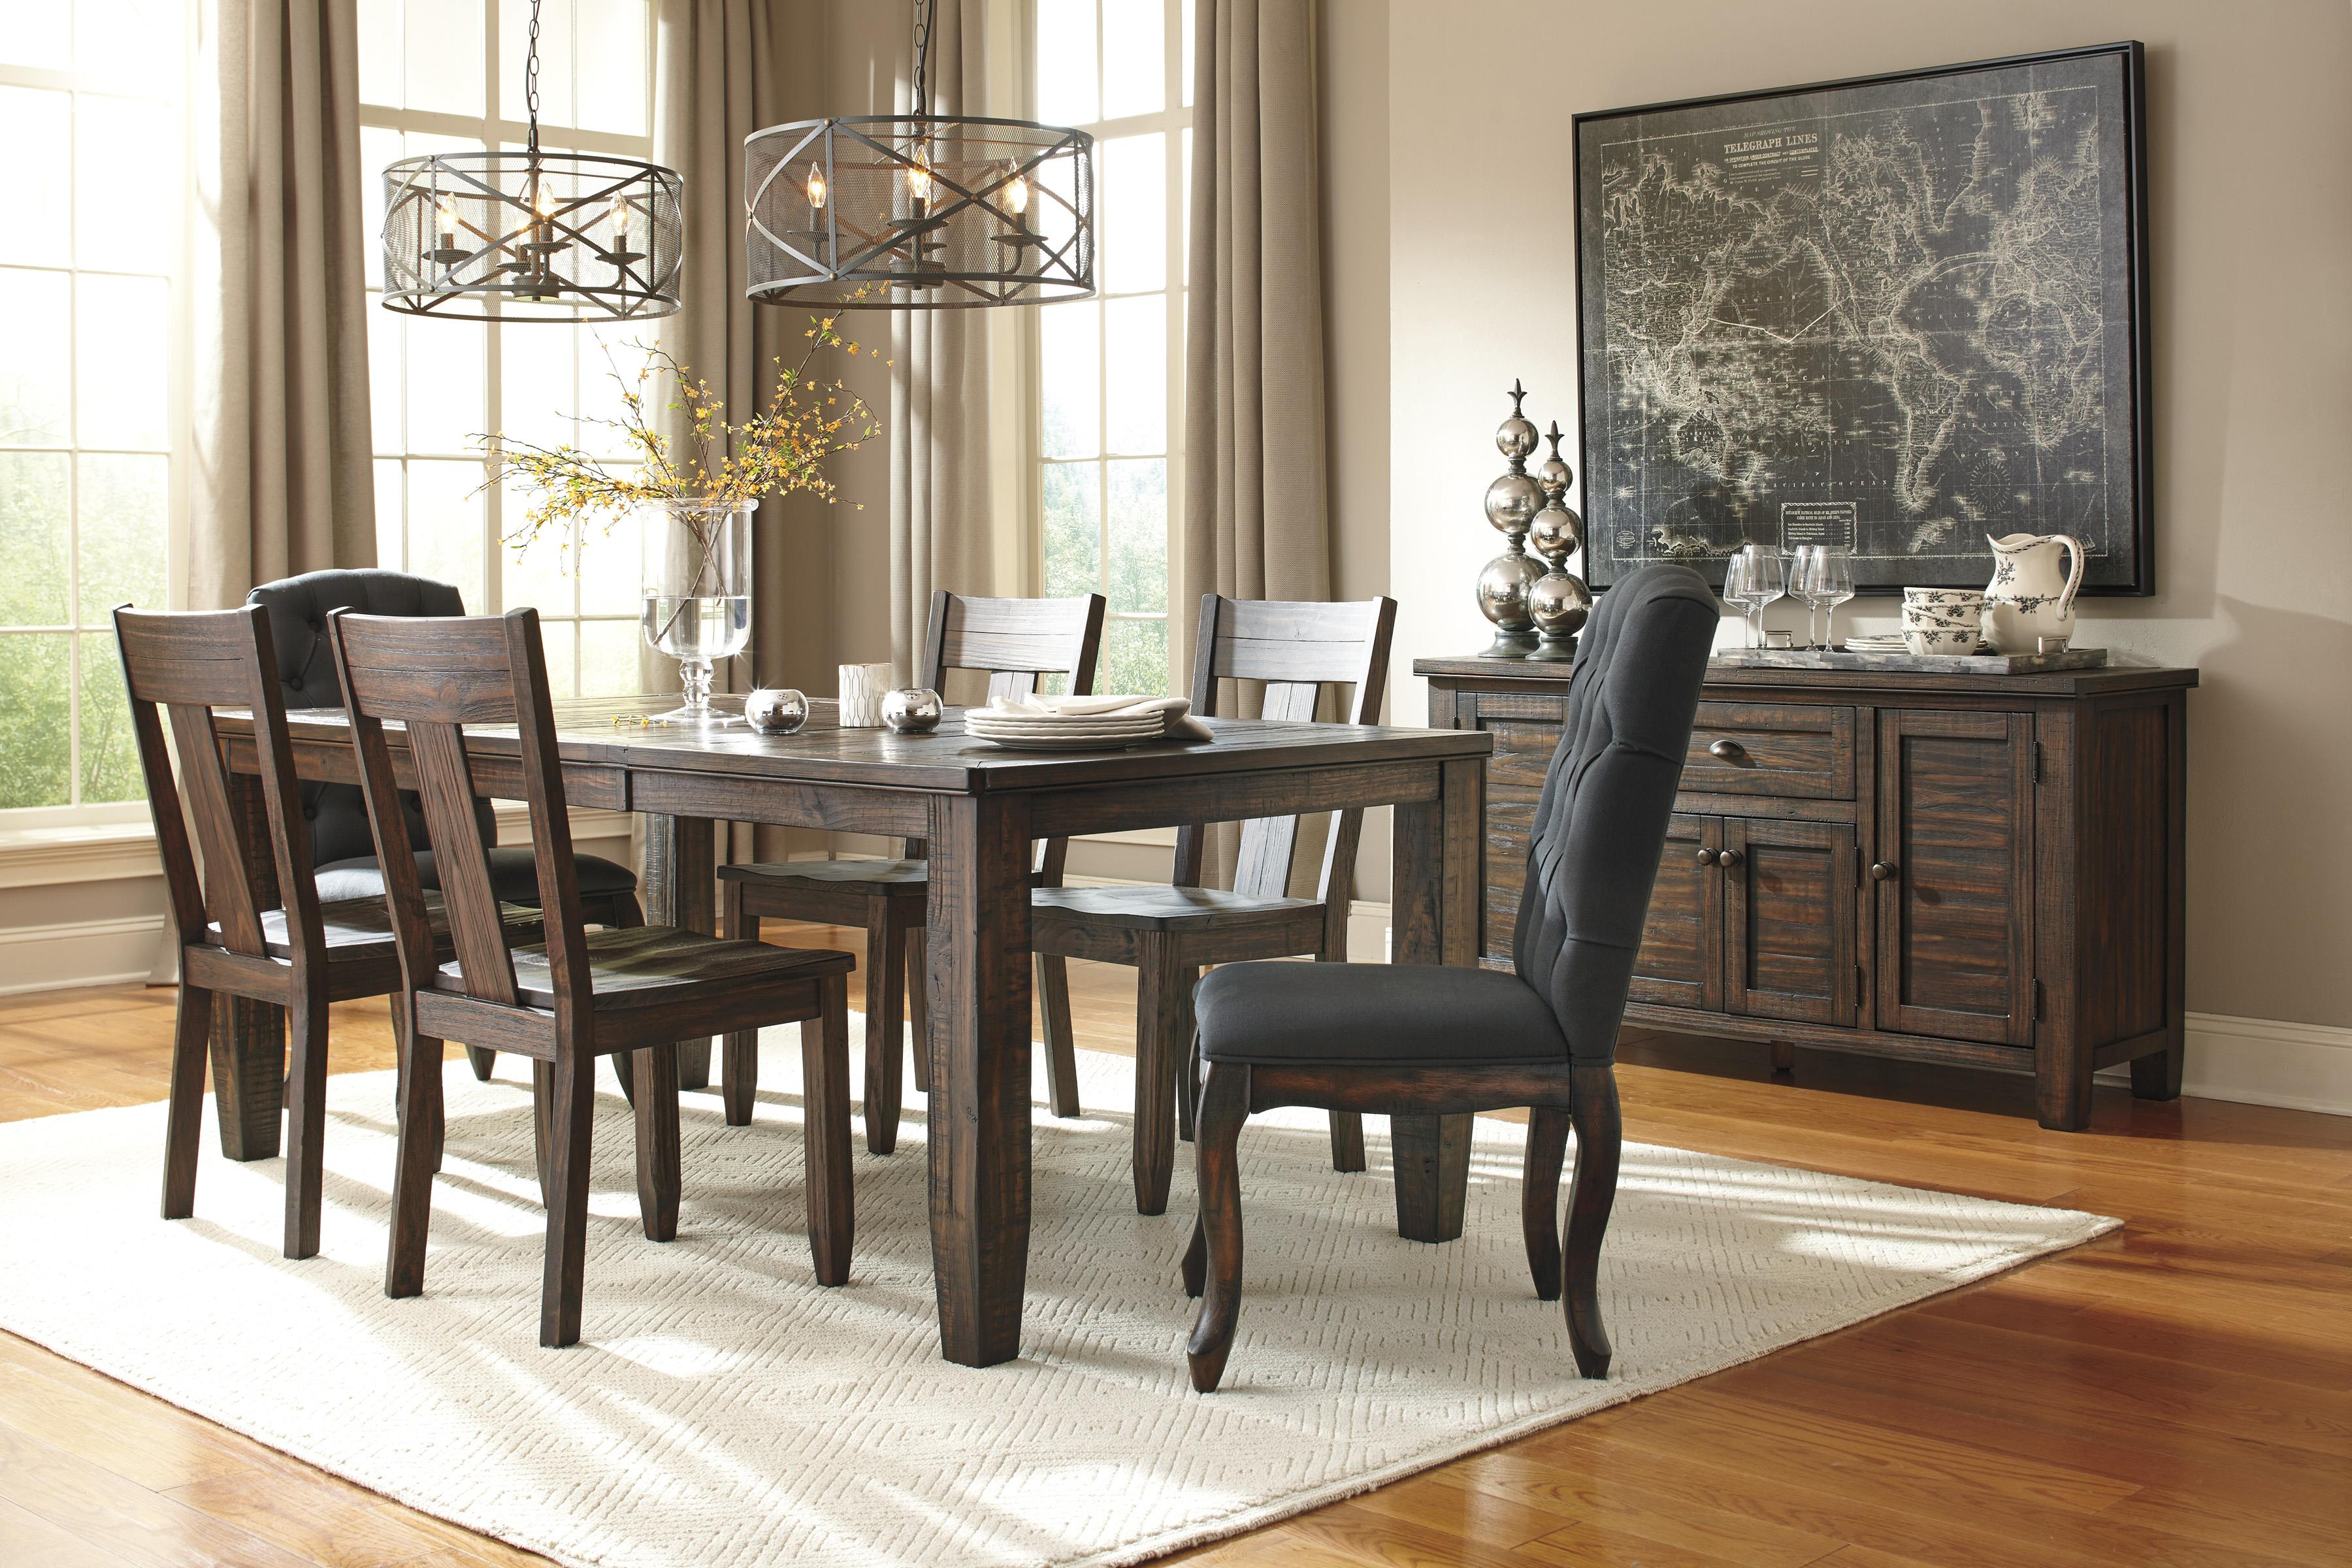 Signature Design by Ashley Trudell Formal Dining Room Group - Item Number: D658 Dining Room Group 8